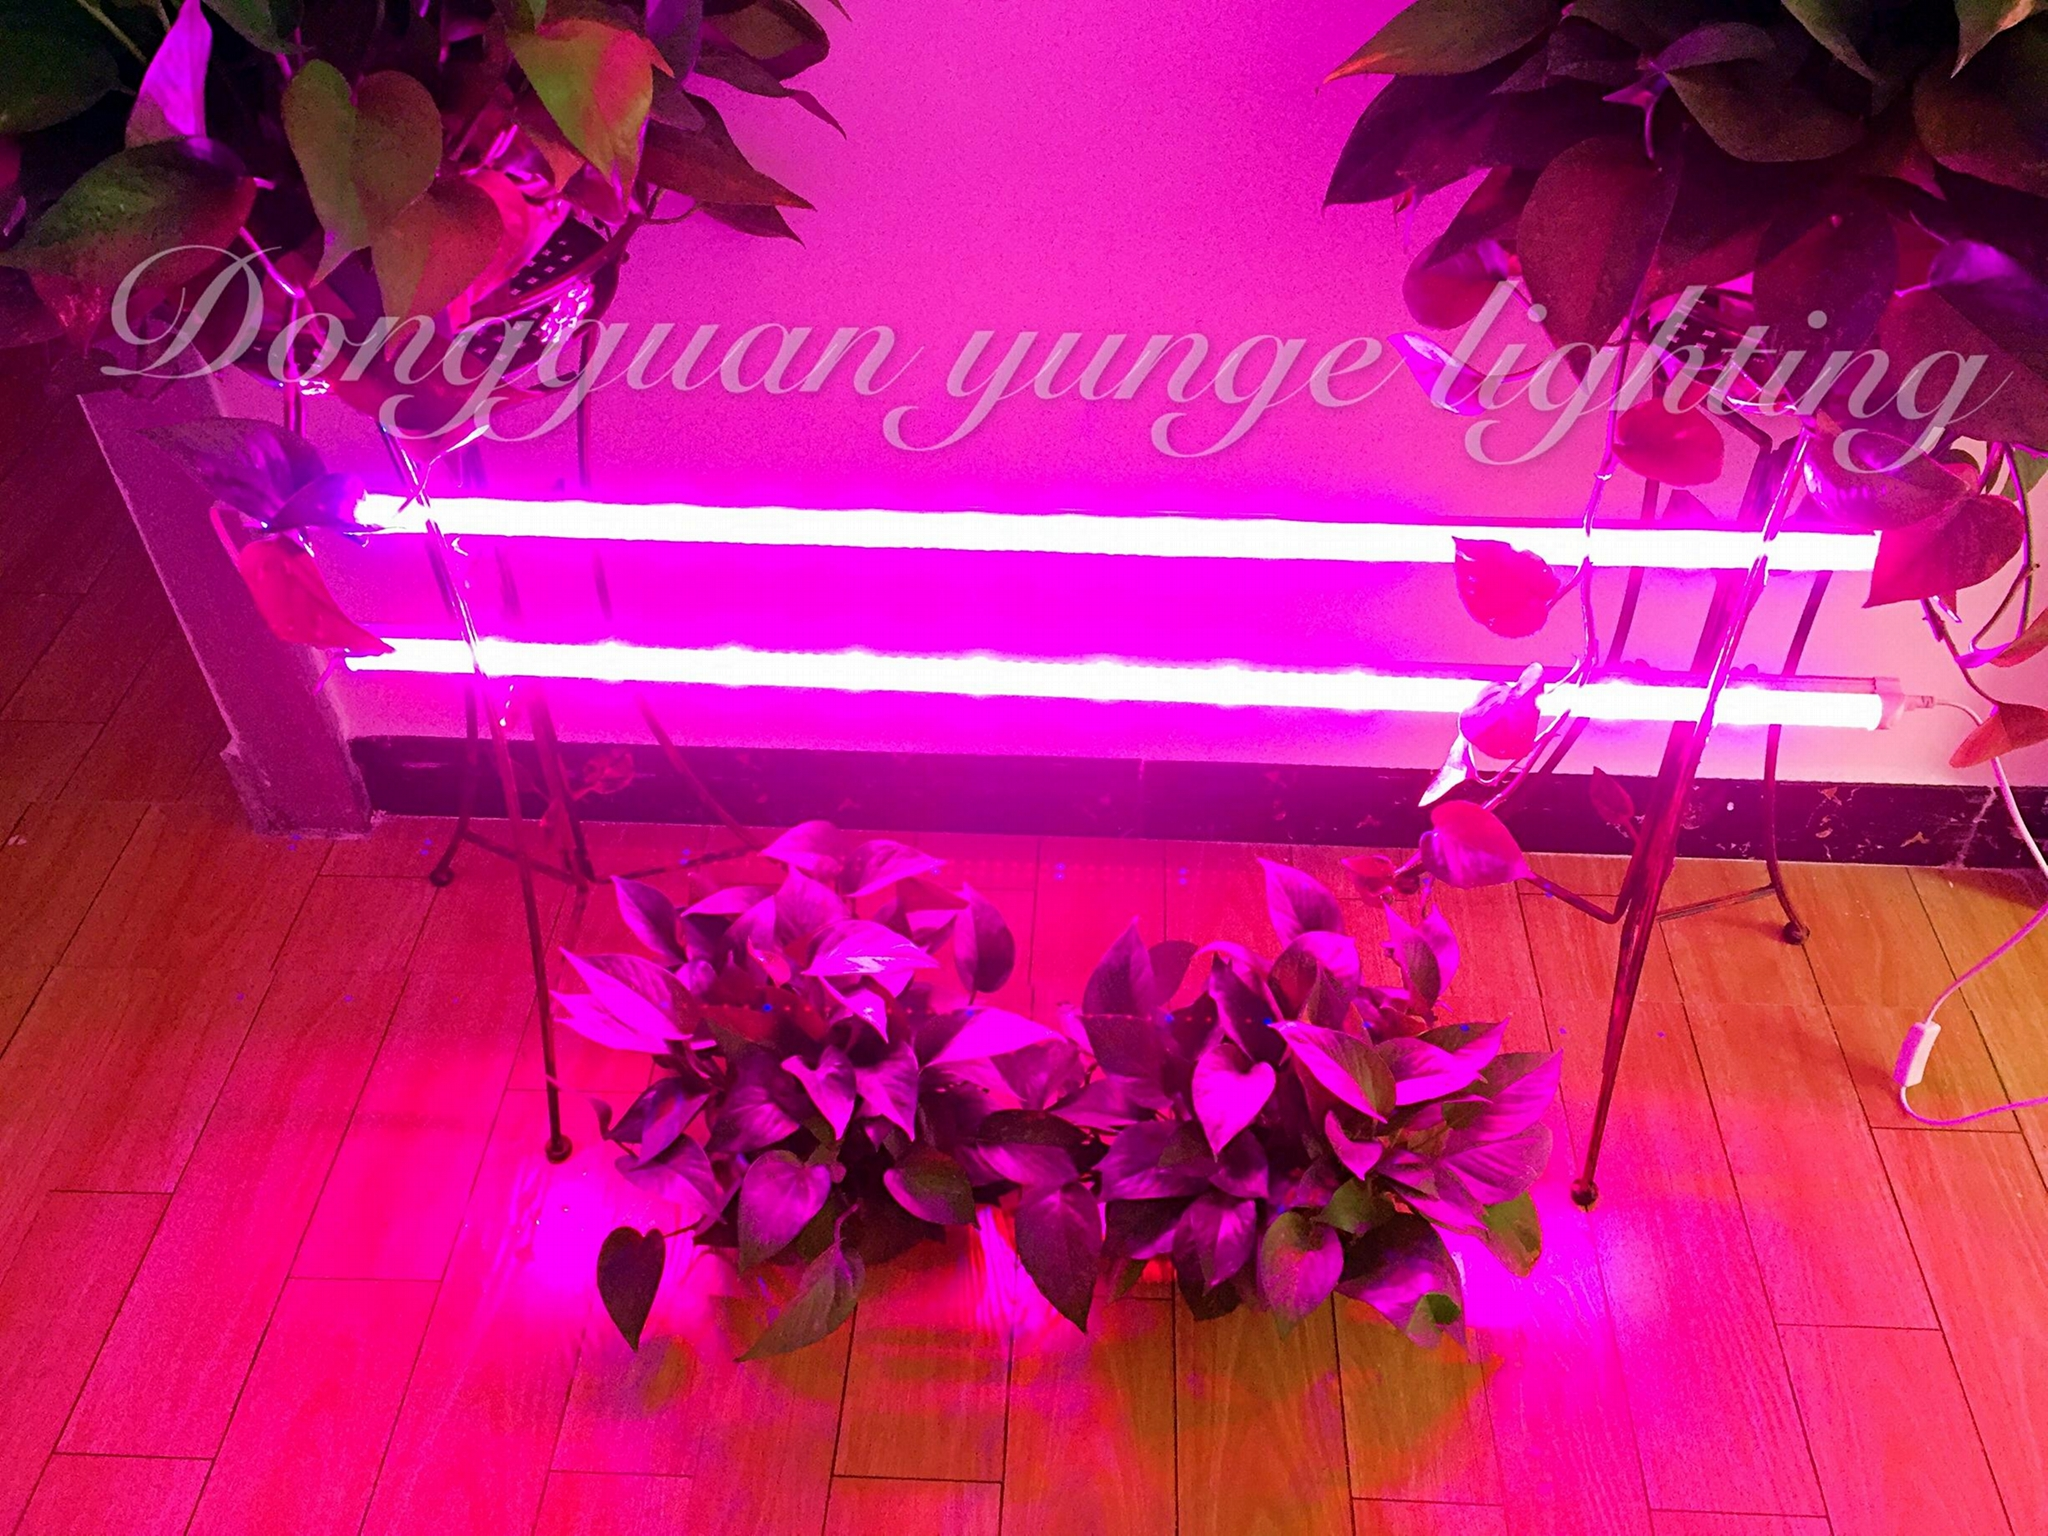 28W LED plant grow lamp,T8 tube grow light double row, Red blue growth lamp. 3